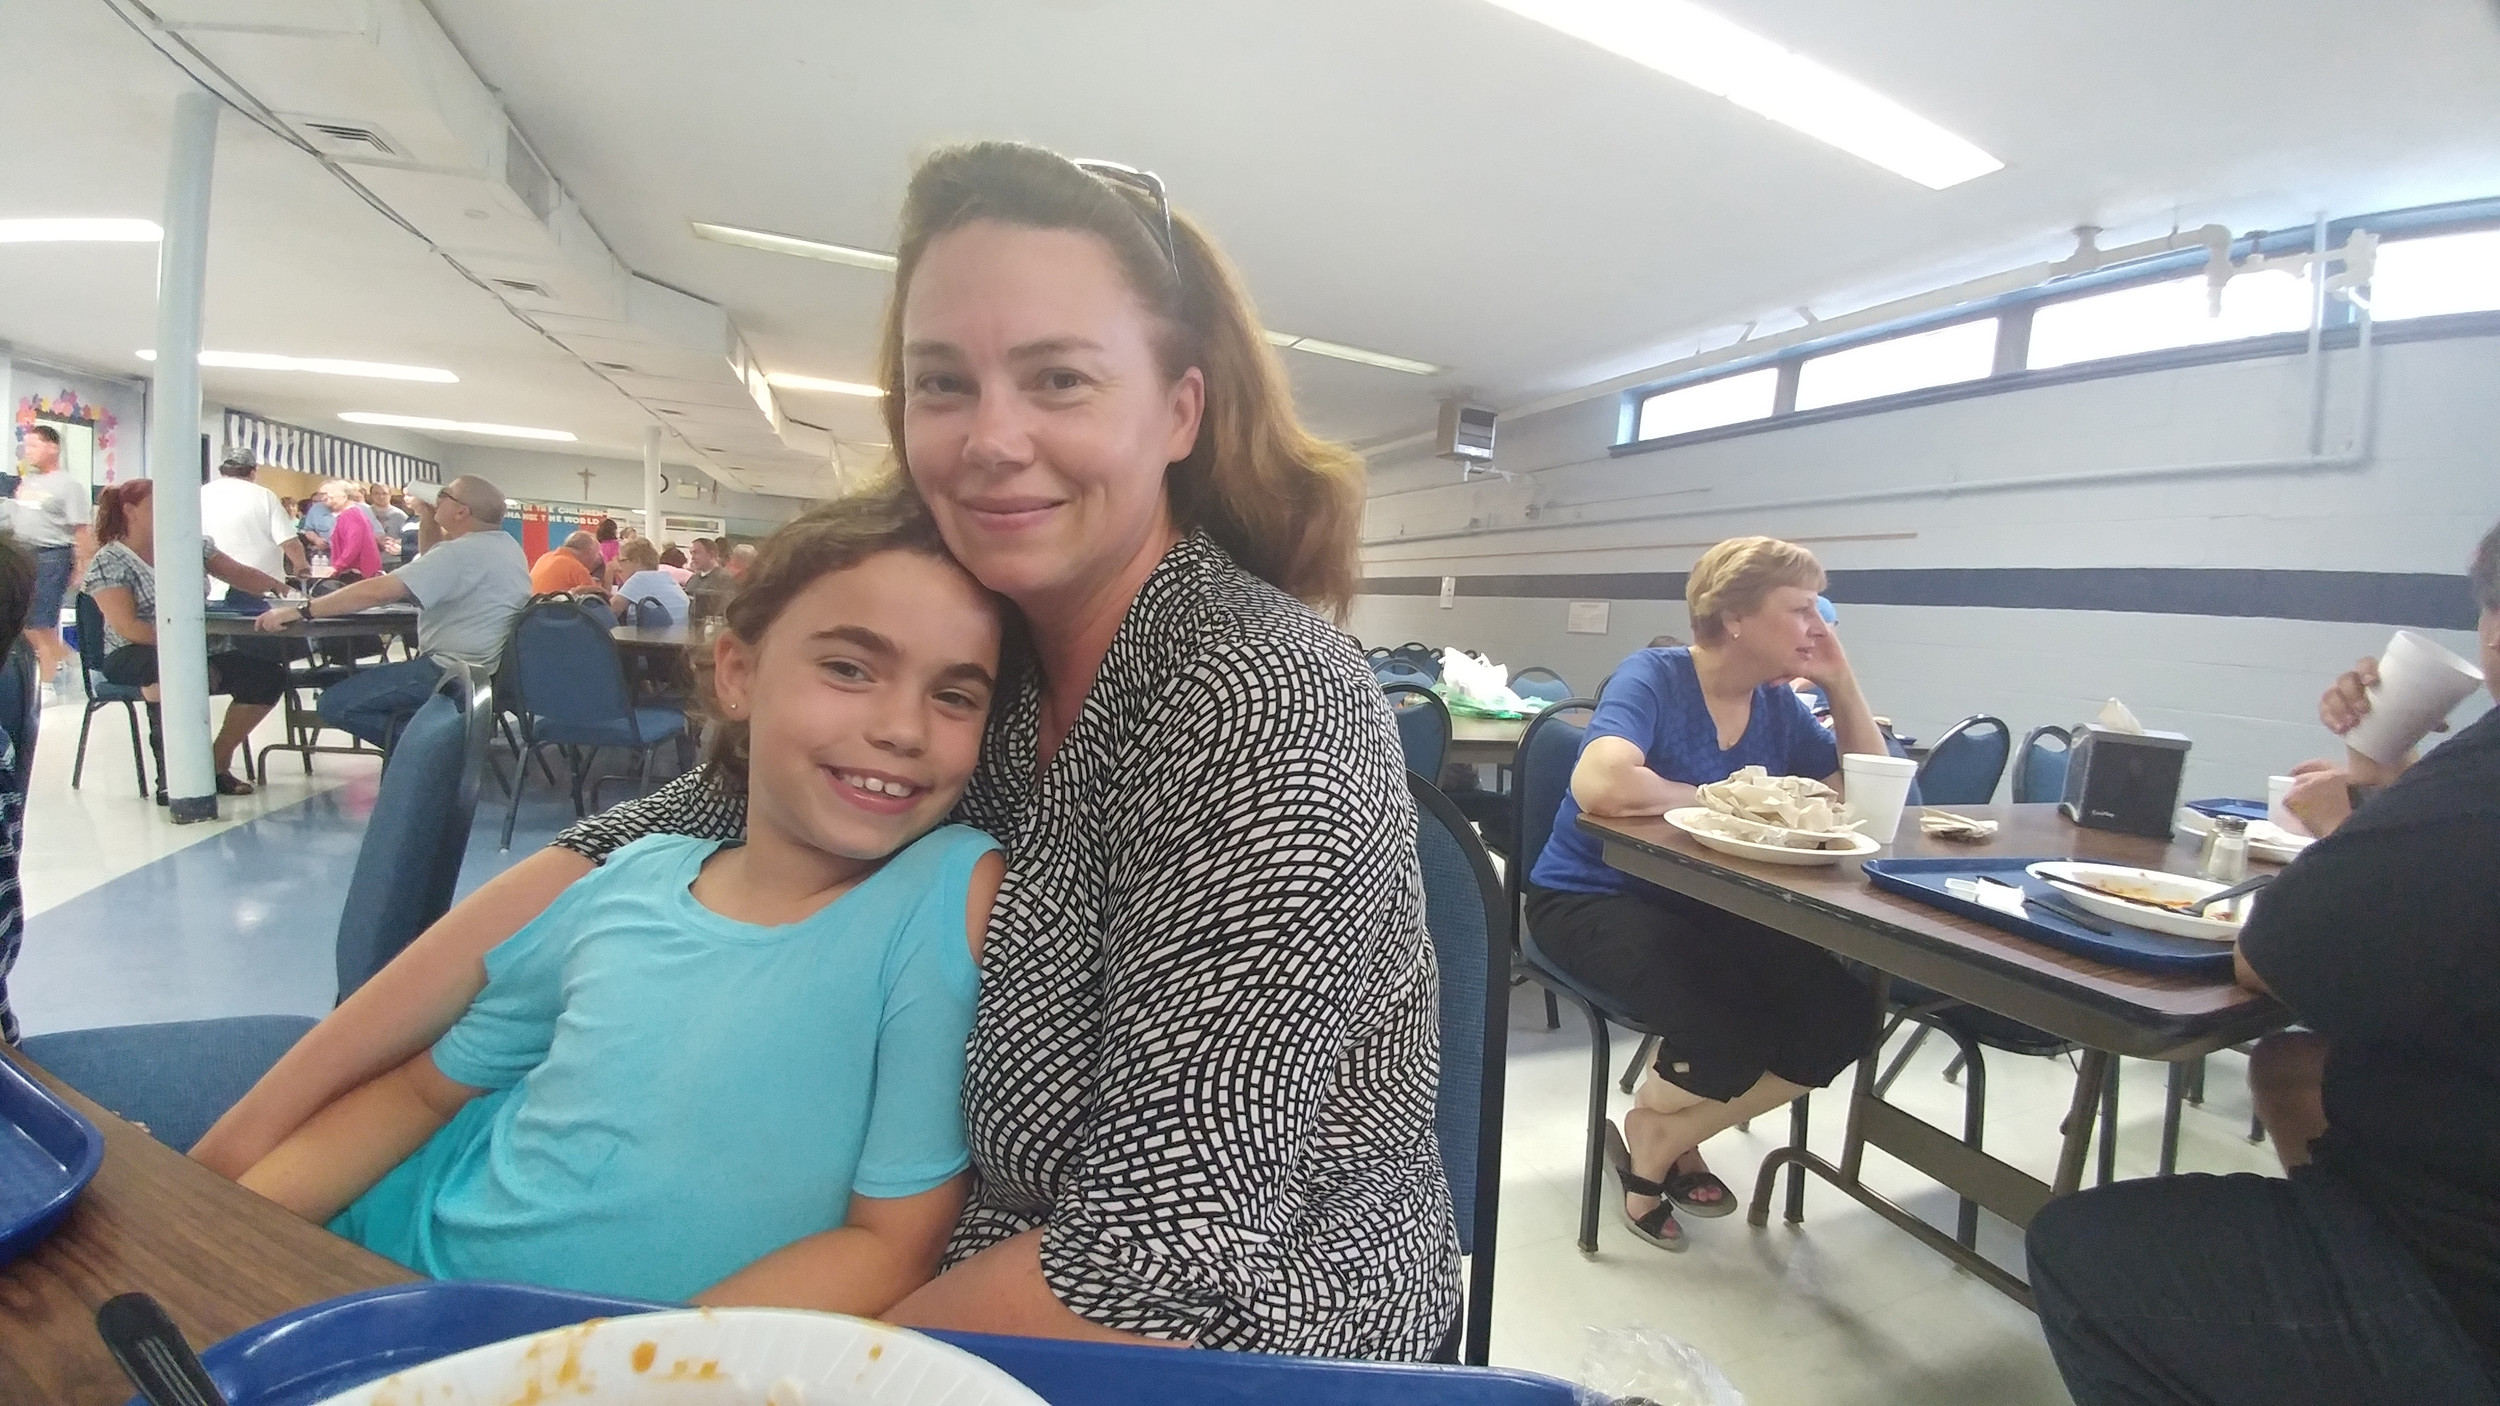 Stacey Mulligan and her daughter Mia Hohenwarter pose for the camera while enjoying dinner at the festival.